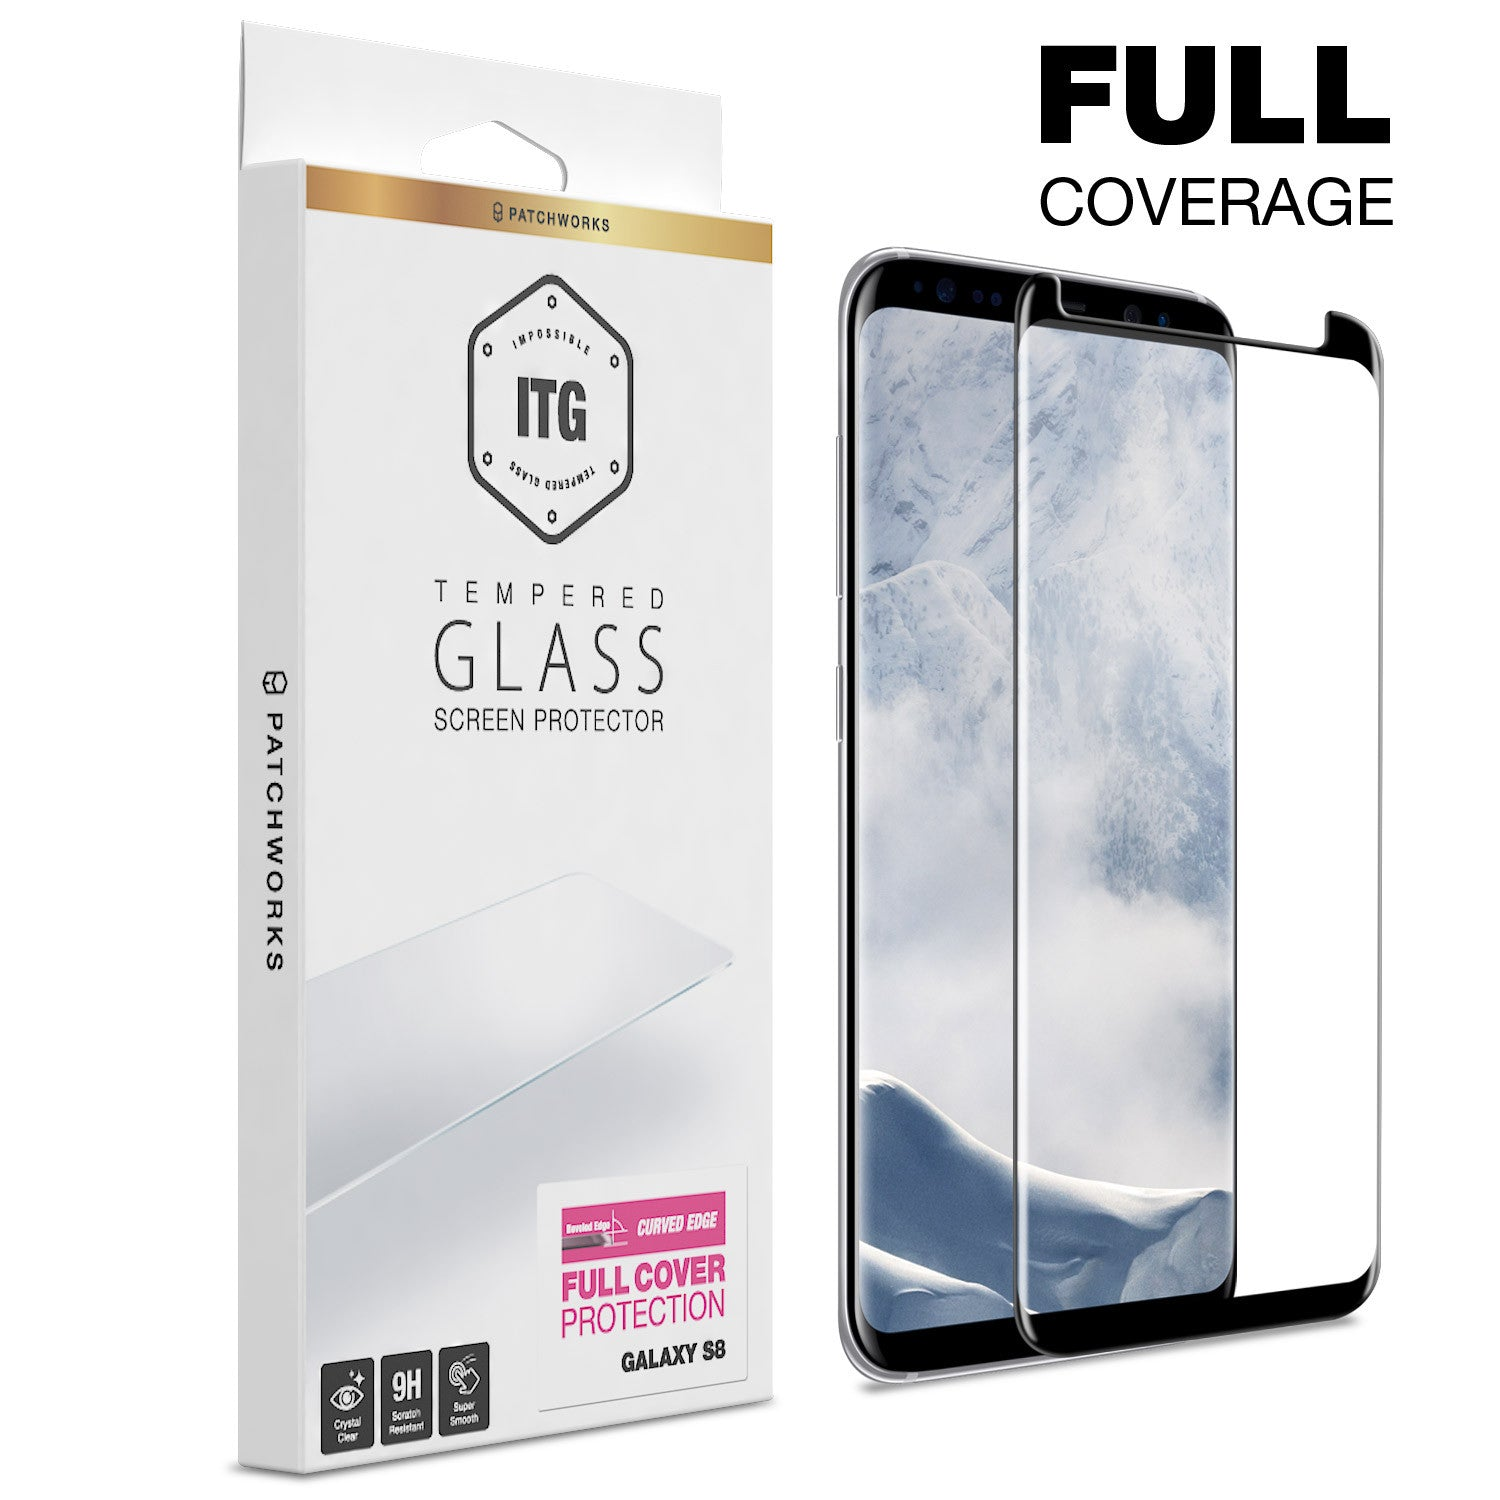 Galaxy S8 - Glass Screen Protector ITG FULL COVER